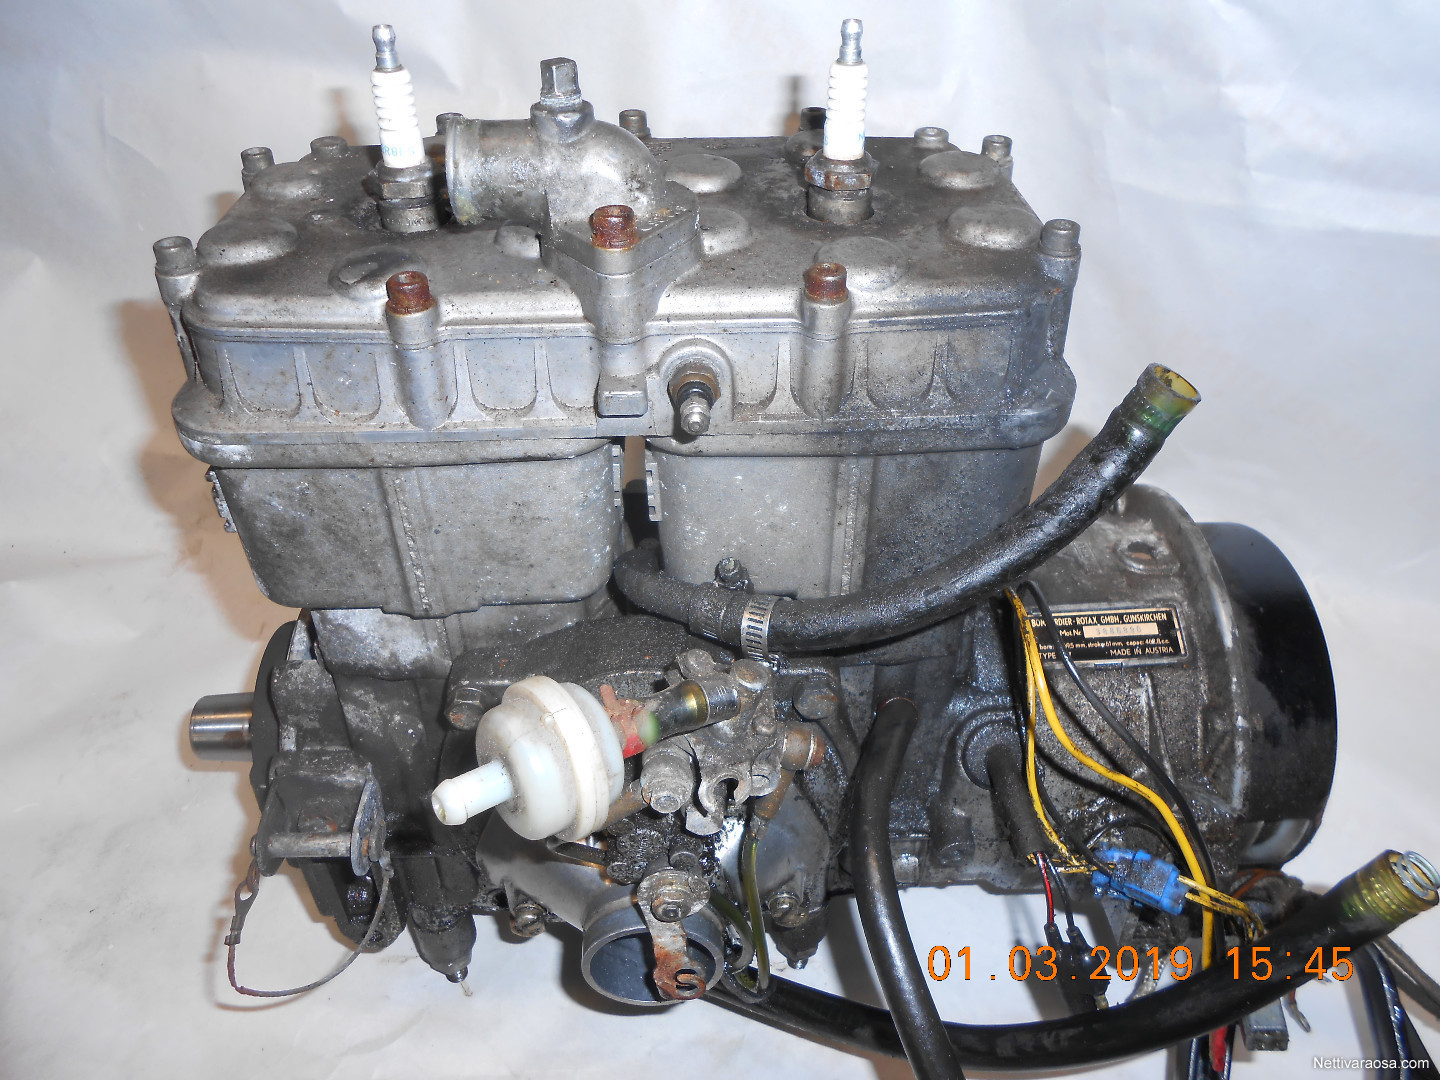 Nettivaraosa - Rotax 1989 - Snow mobile spare parts and